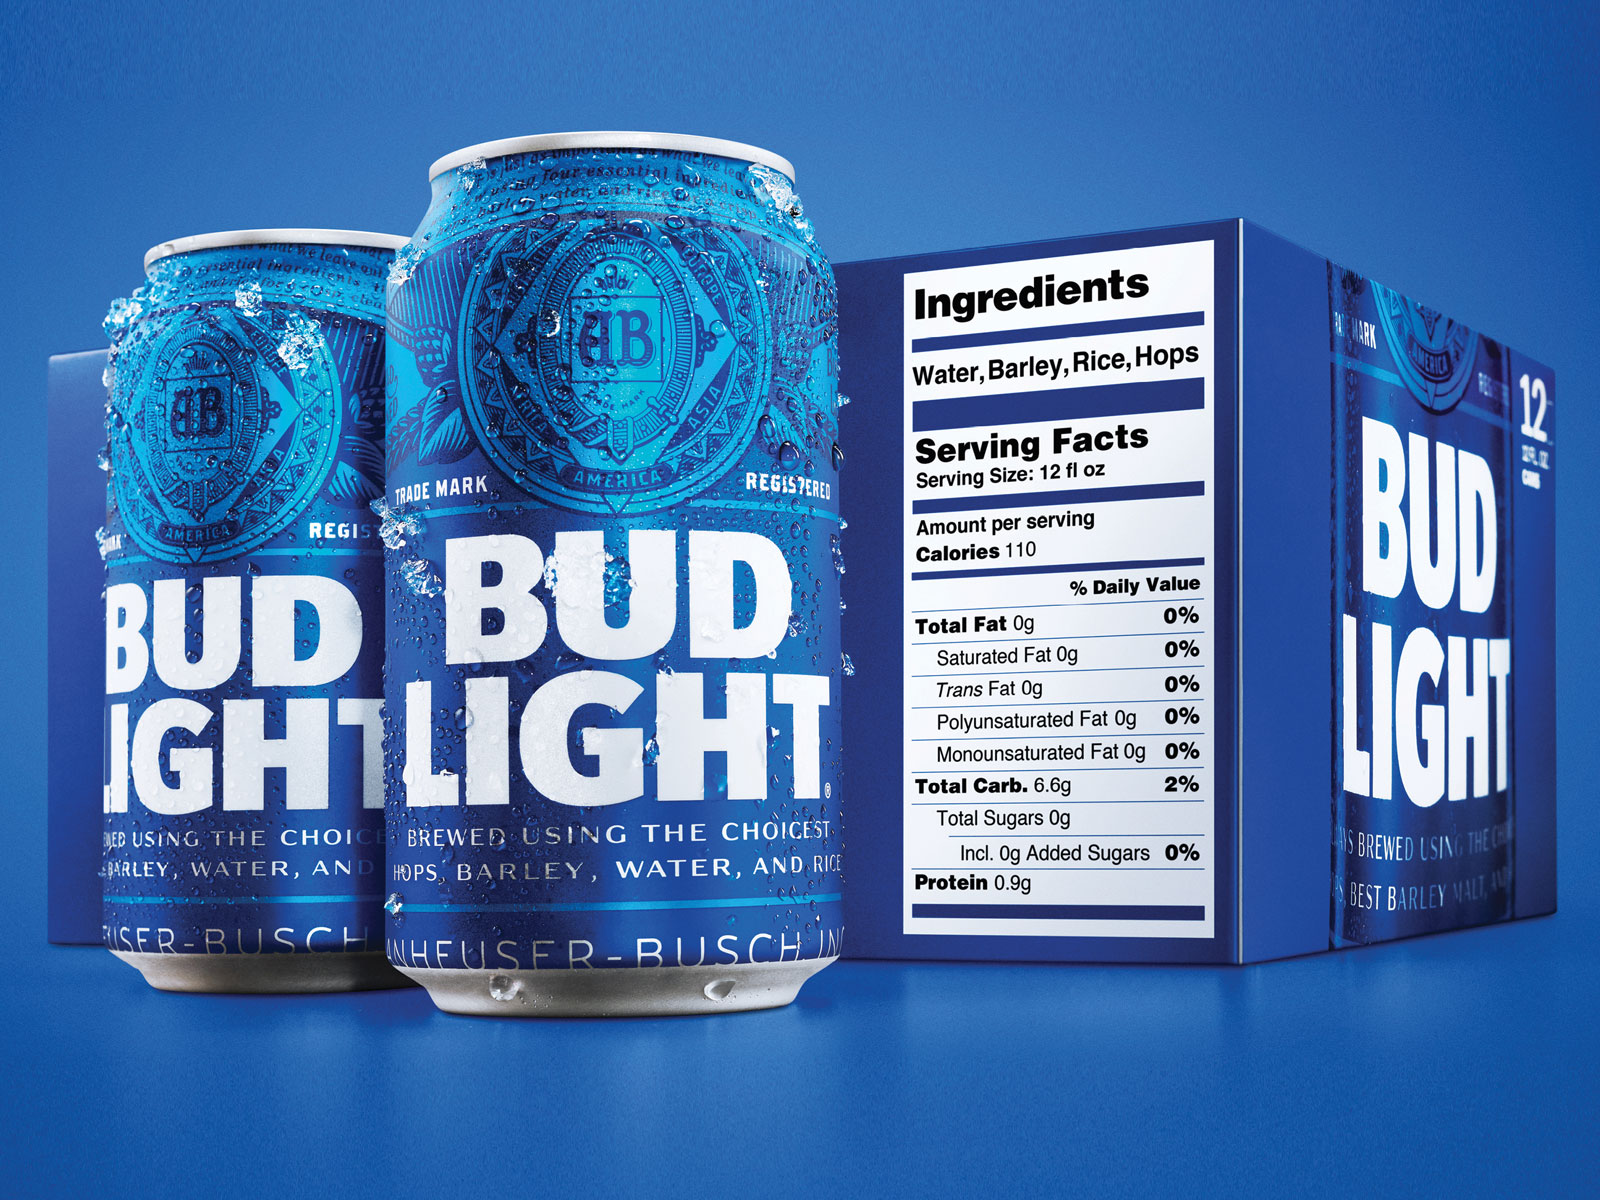 Bud Light Adds Ingredients And Serving Facts To Its